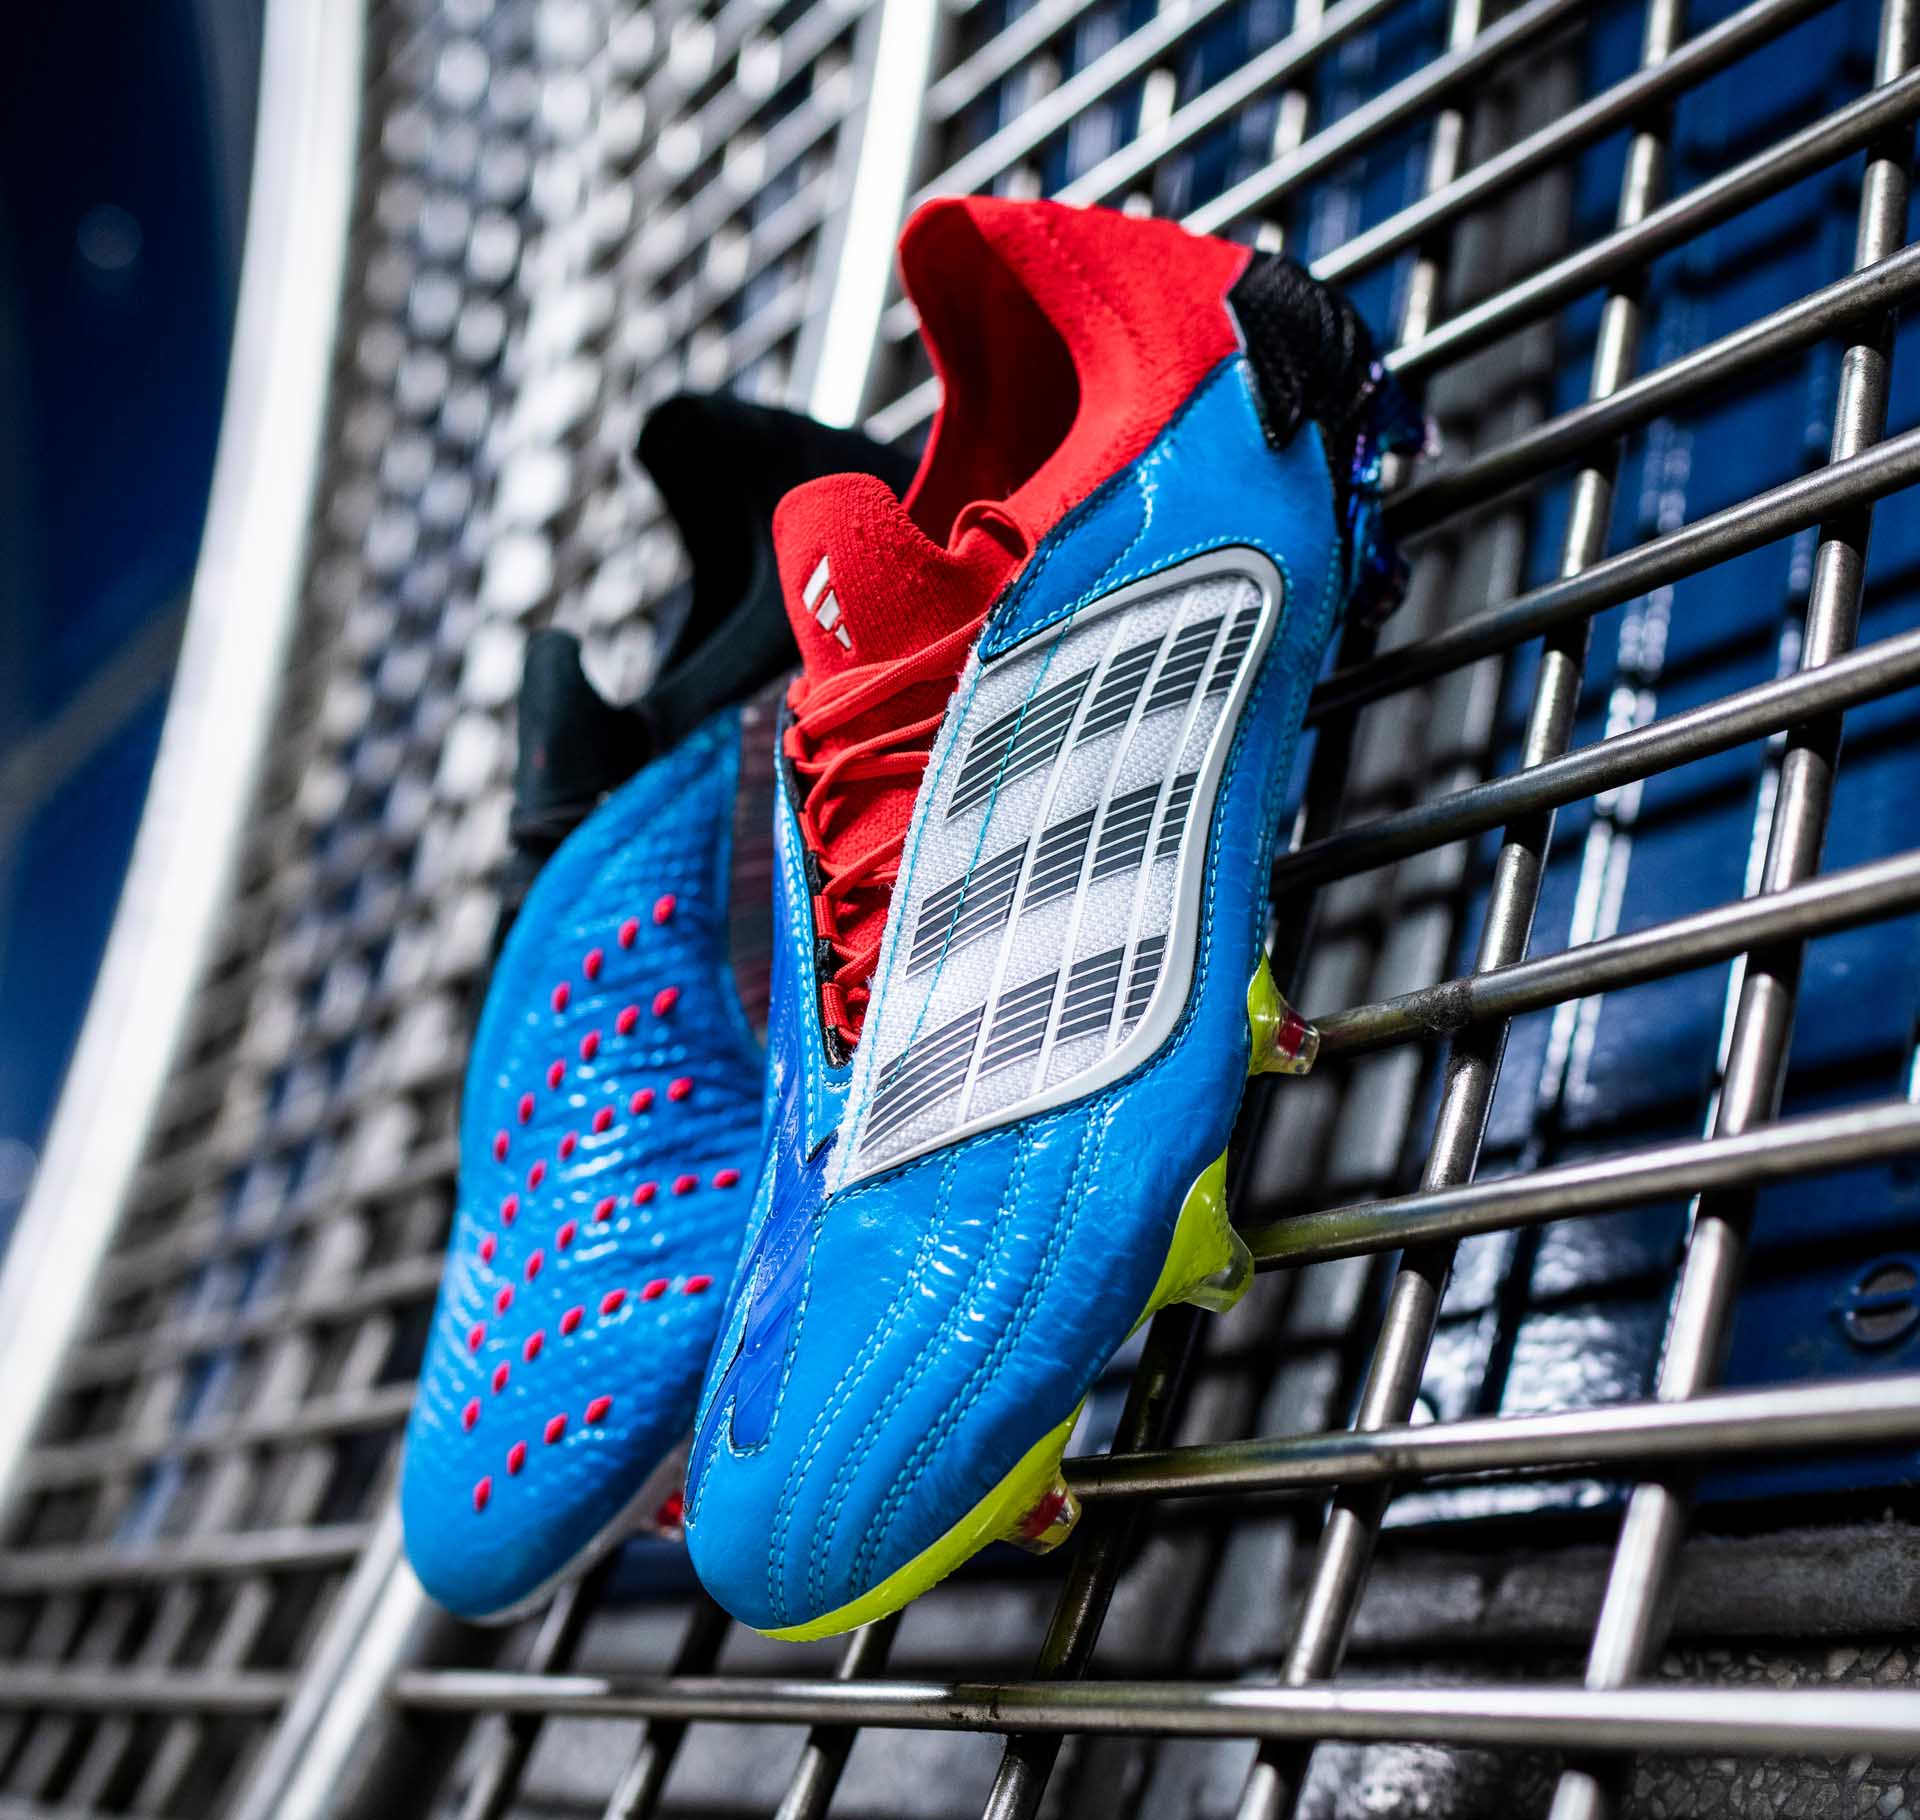 Adidas Launch The Special Edition Predator Archive Mutator Football Boots Soccerbible